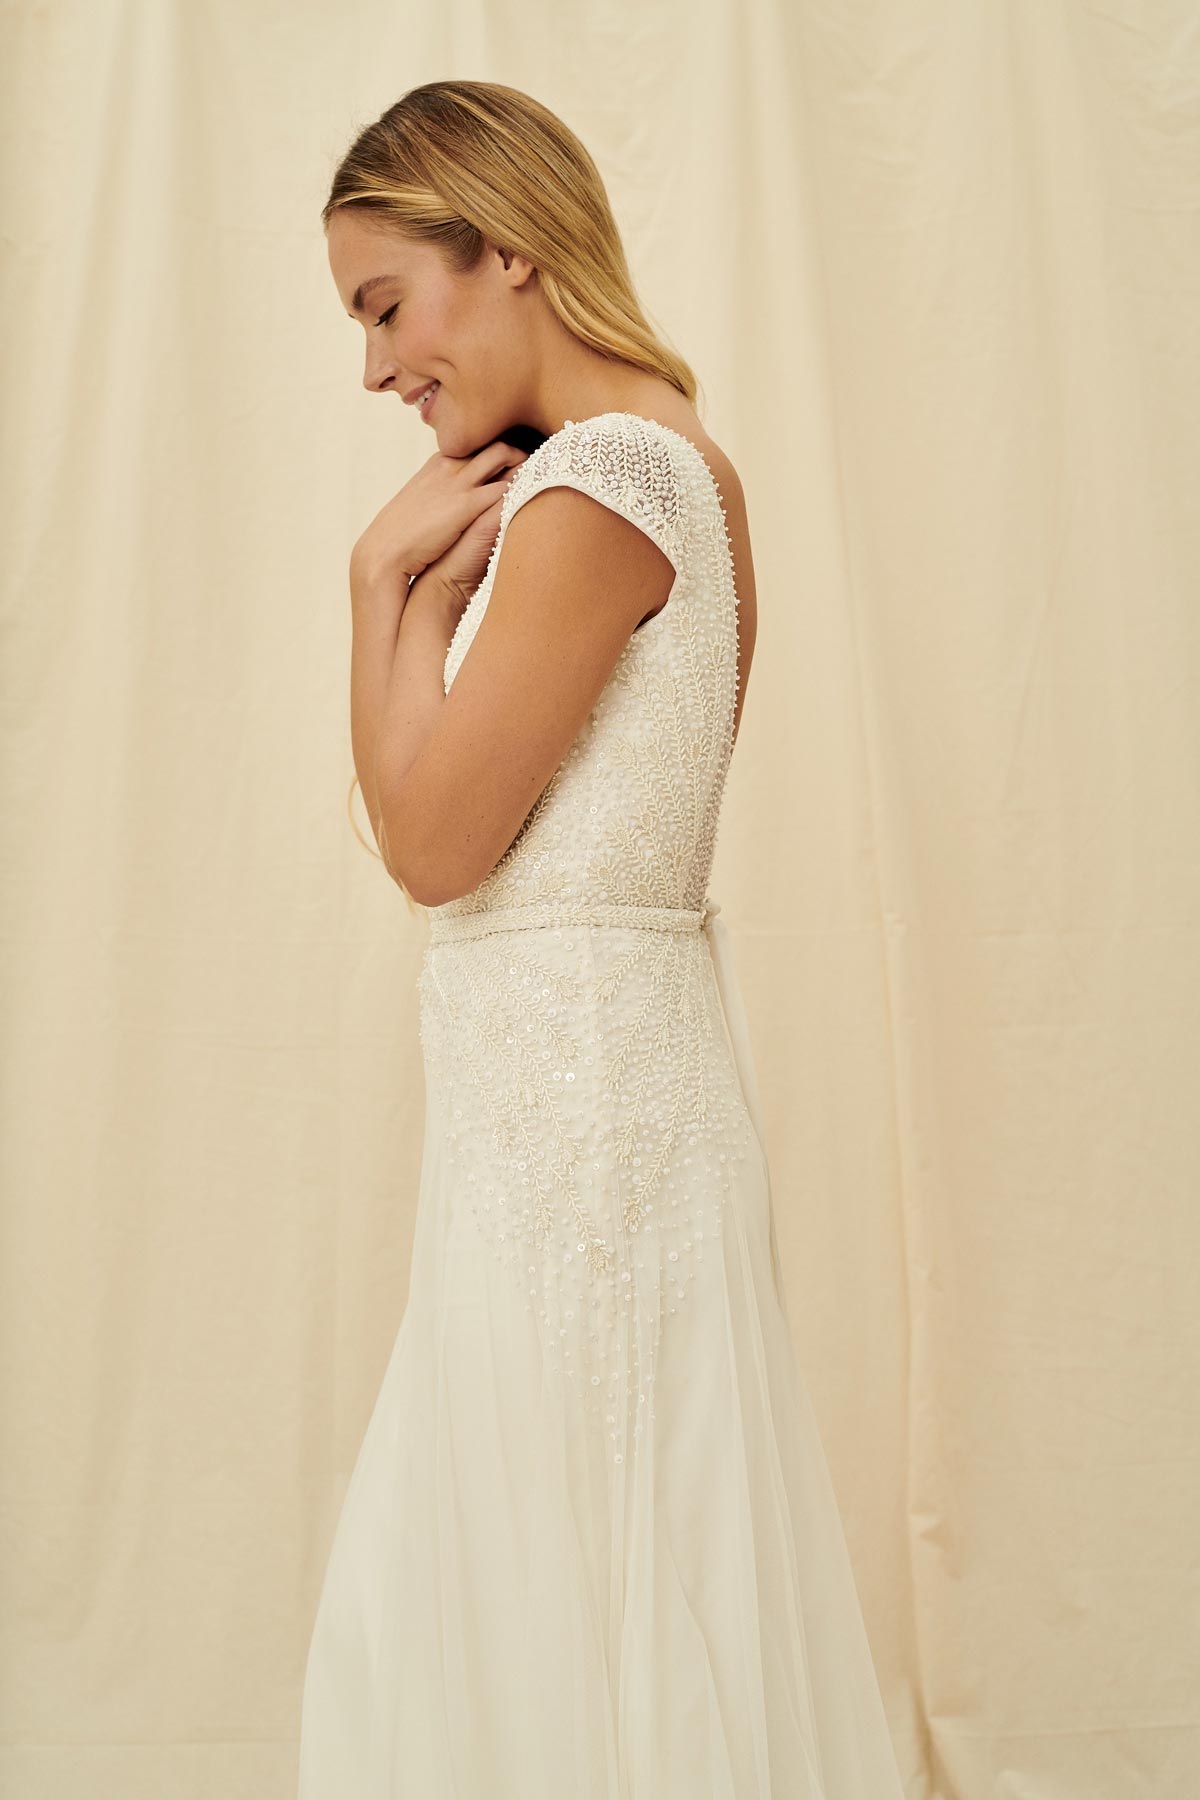 A romantic wedding dress with a tulle skirt, beaded cap sleeves, and a super low back